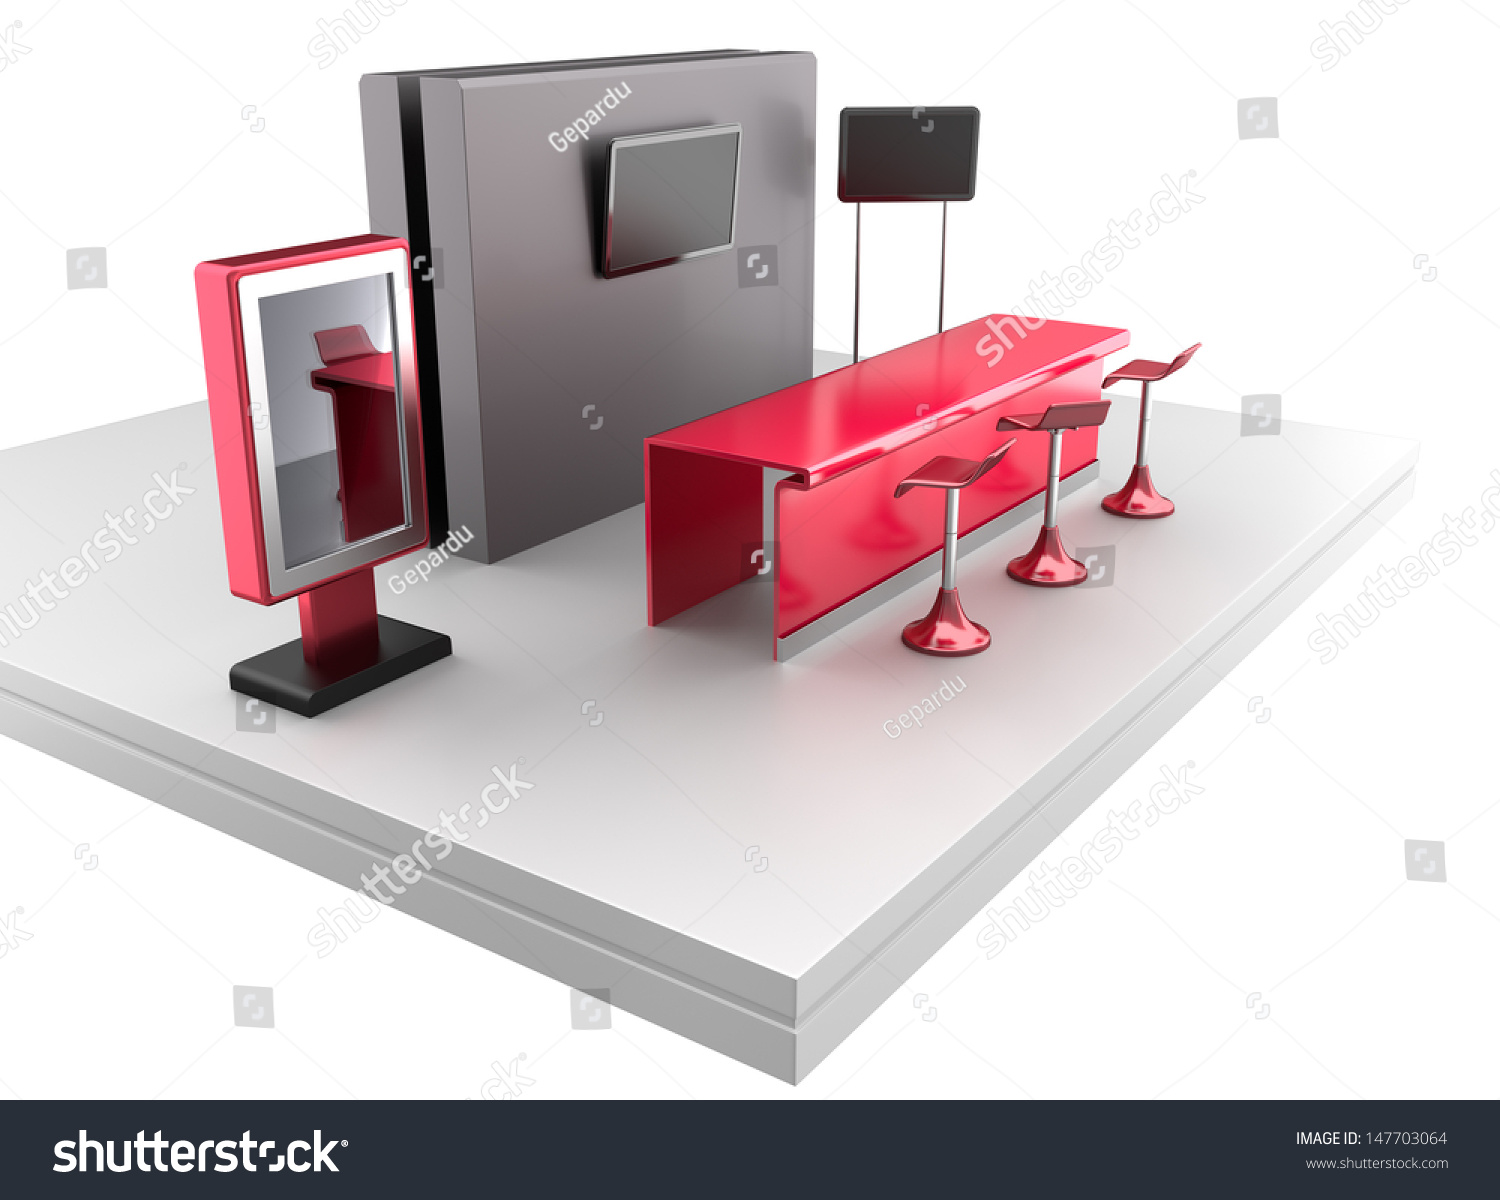 Exhibition Stall Rendering : Trade exhibition booth or stall d render stock photo